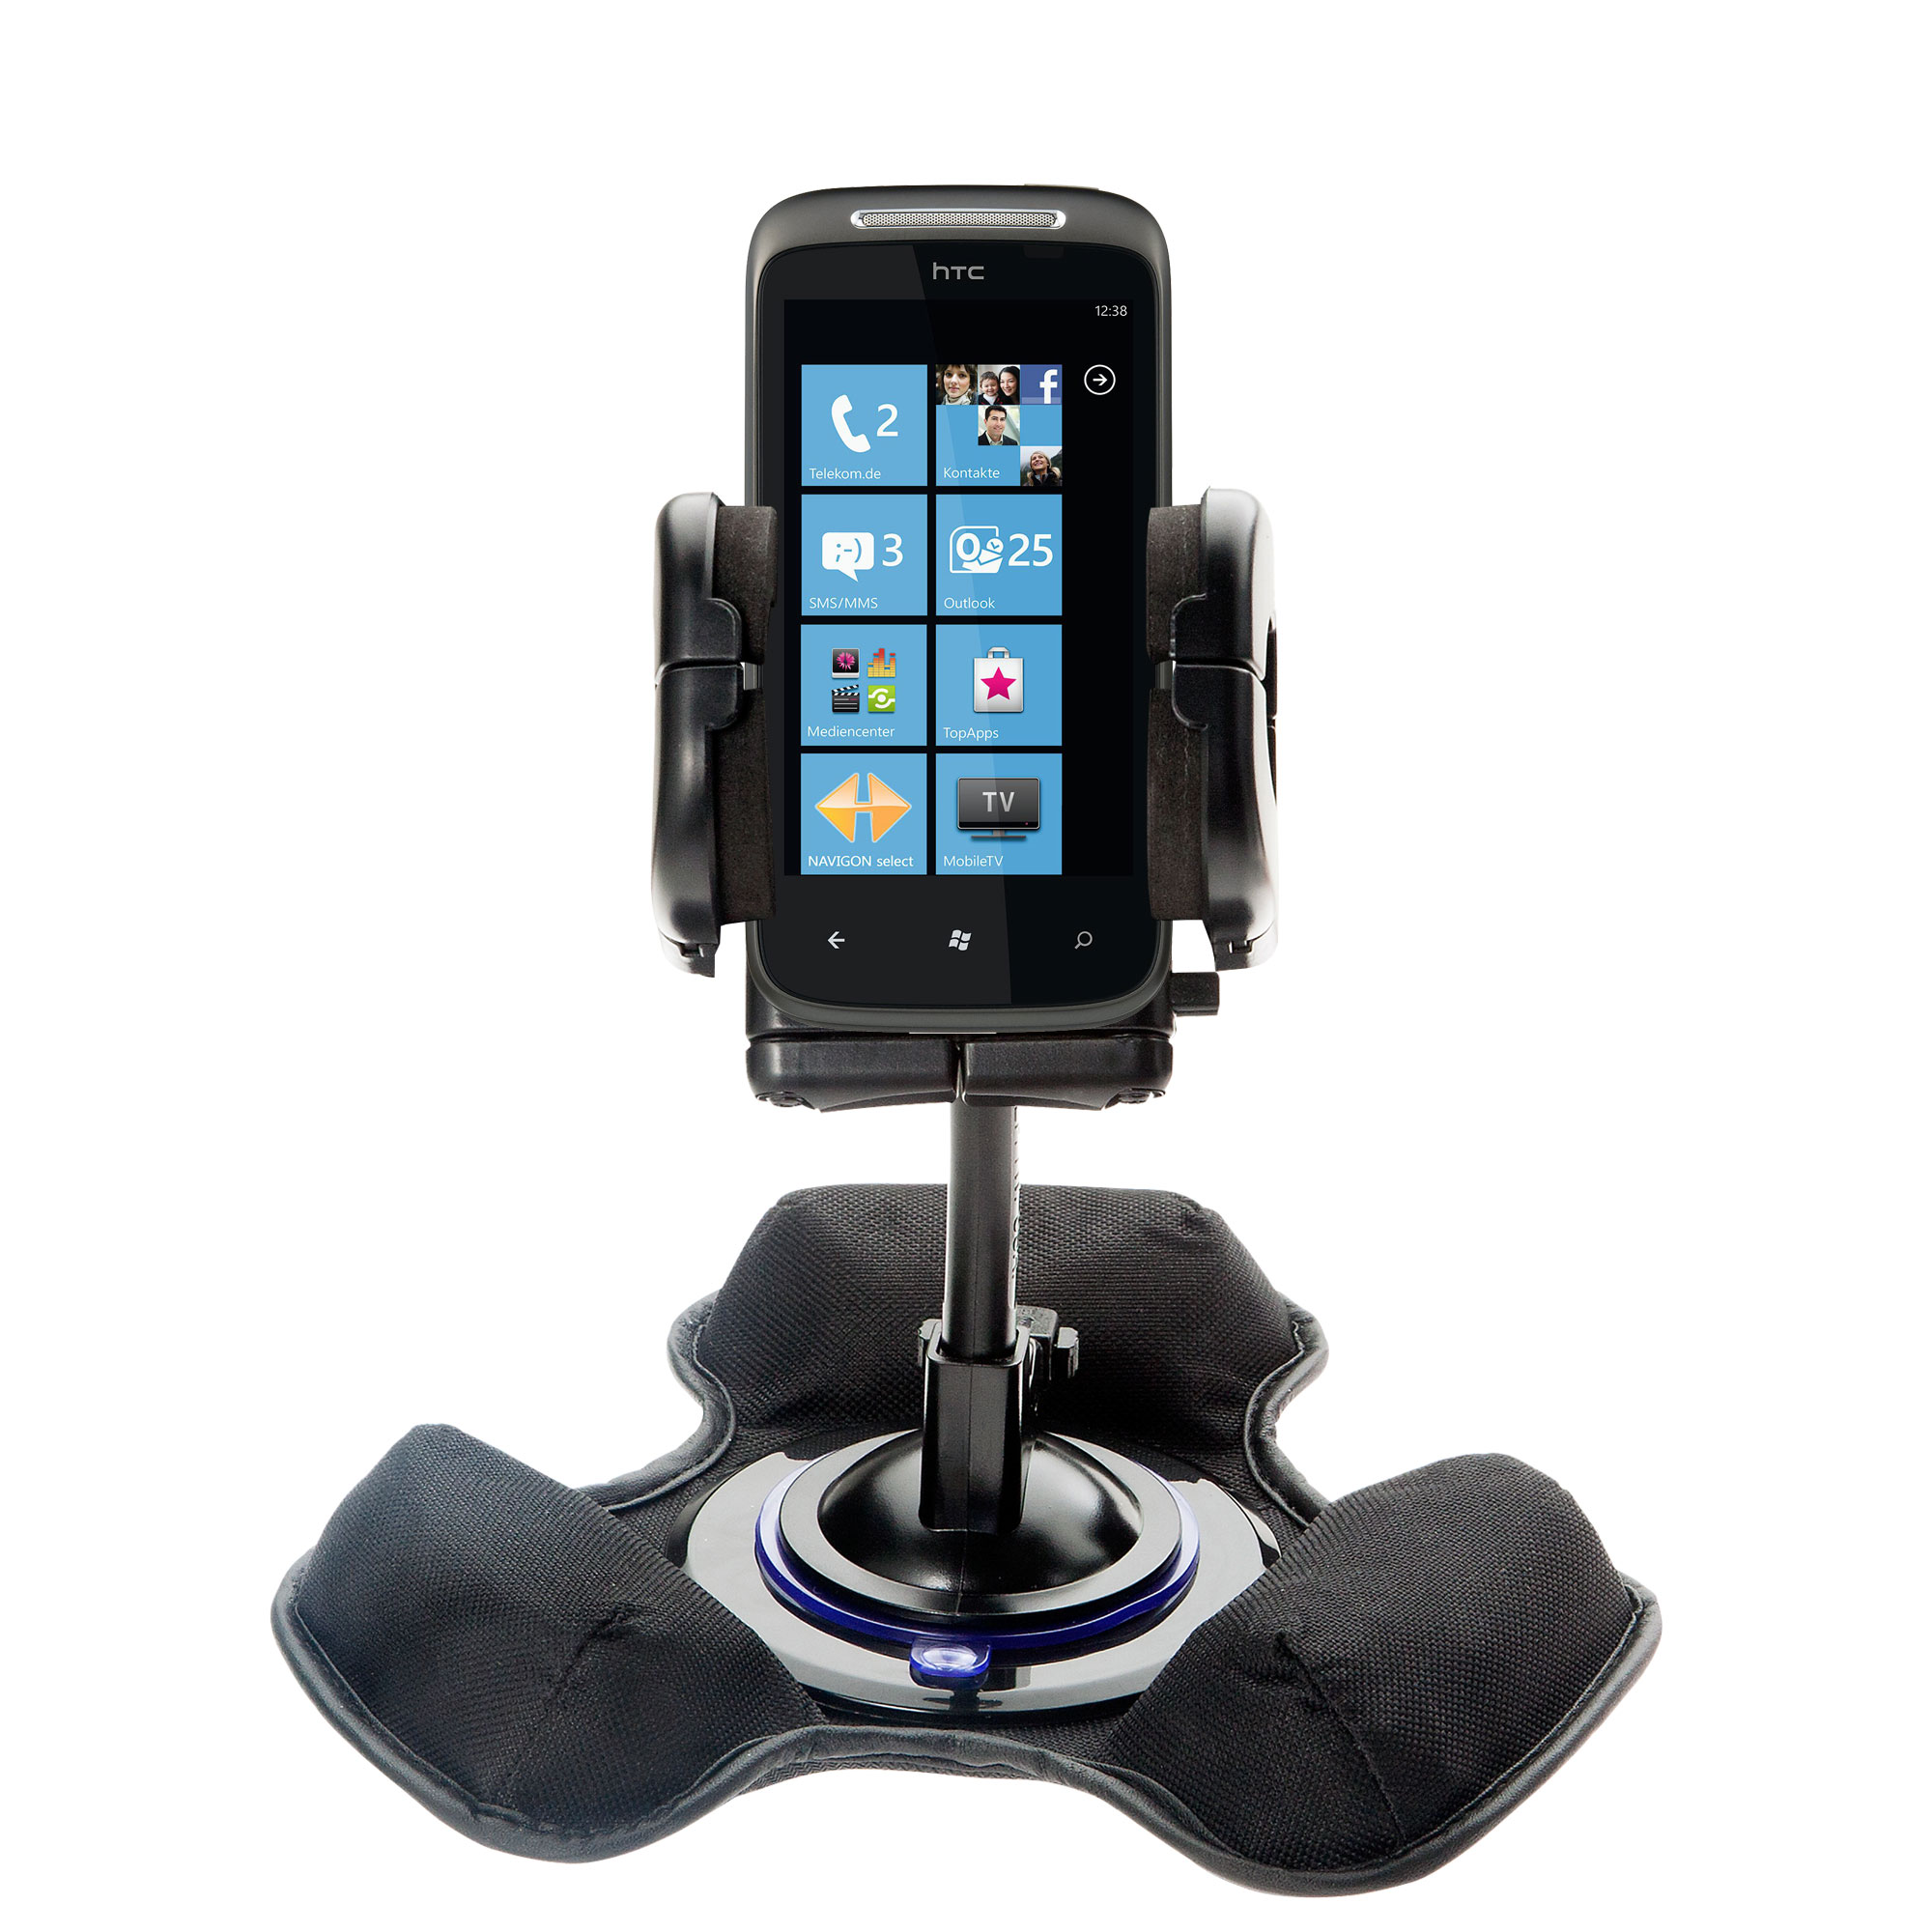 Dash and Windshield Holder compatible with the HTC 7 Mozart